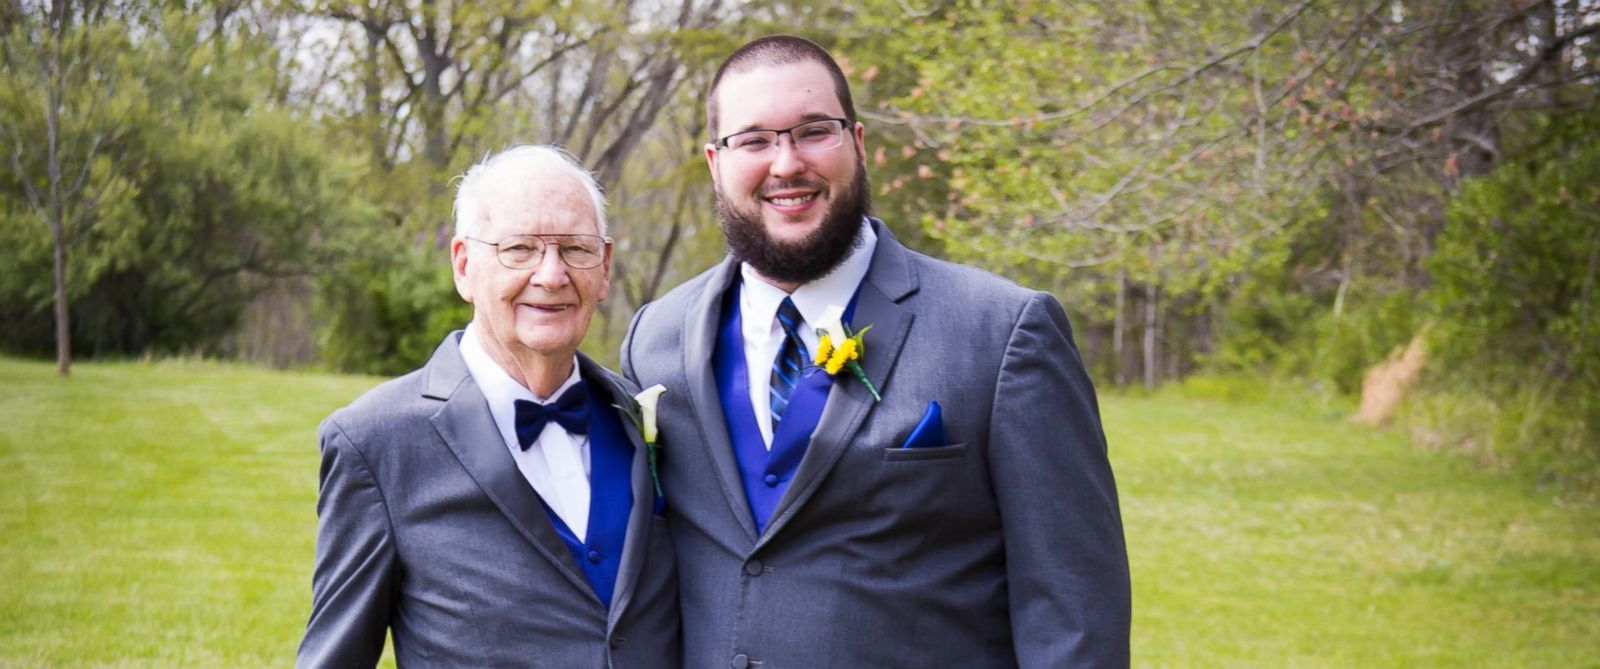 PHOTO: KC Schafer of Clarksville, Indiana, said he always knew he wanted his grandpa, Charles Schafer, 90, to be his best man.